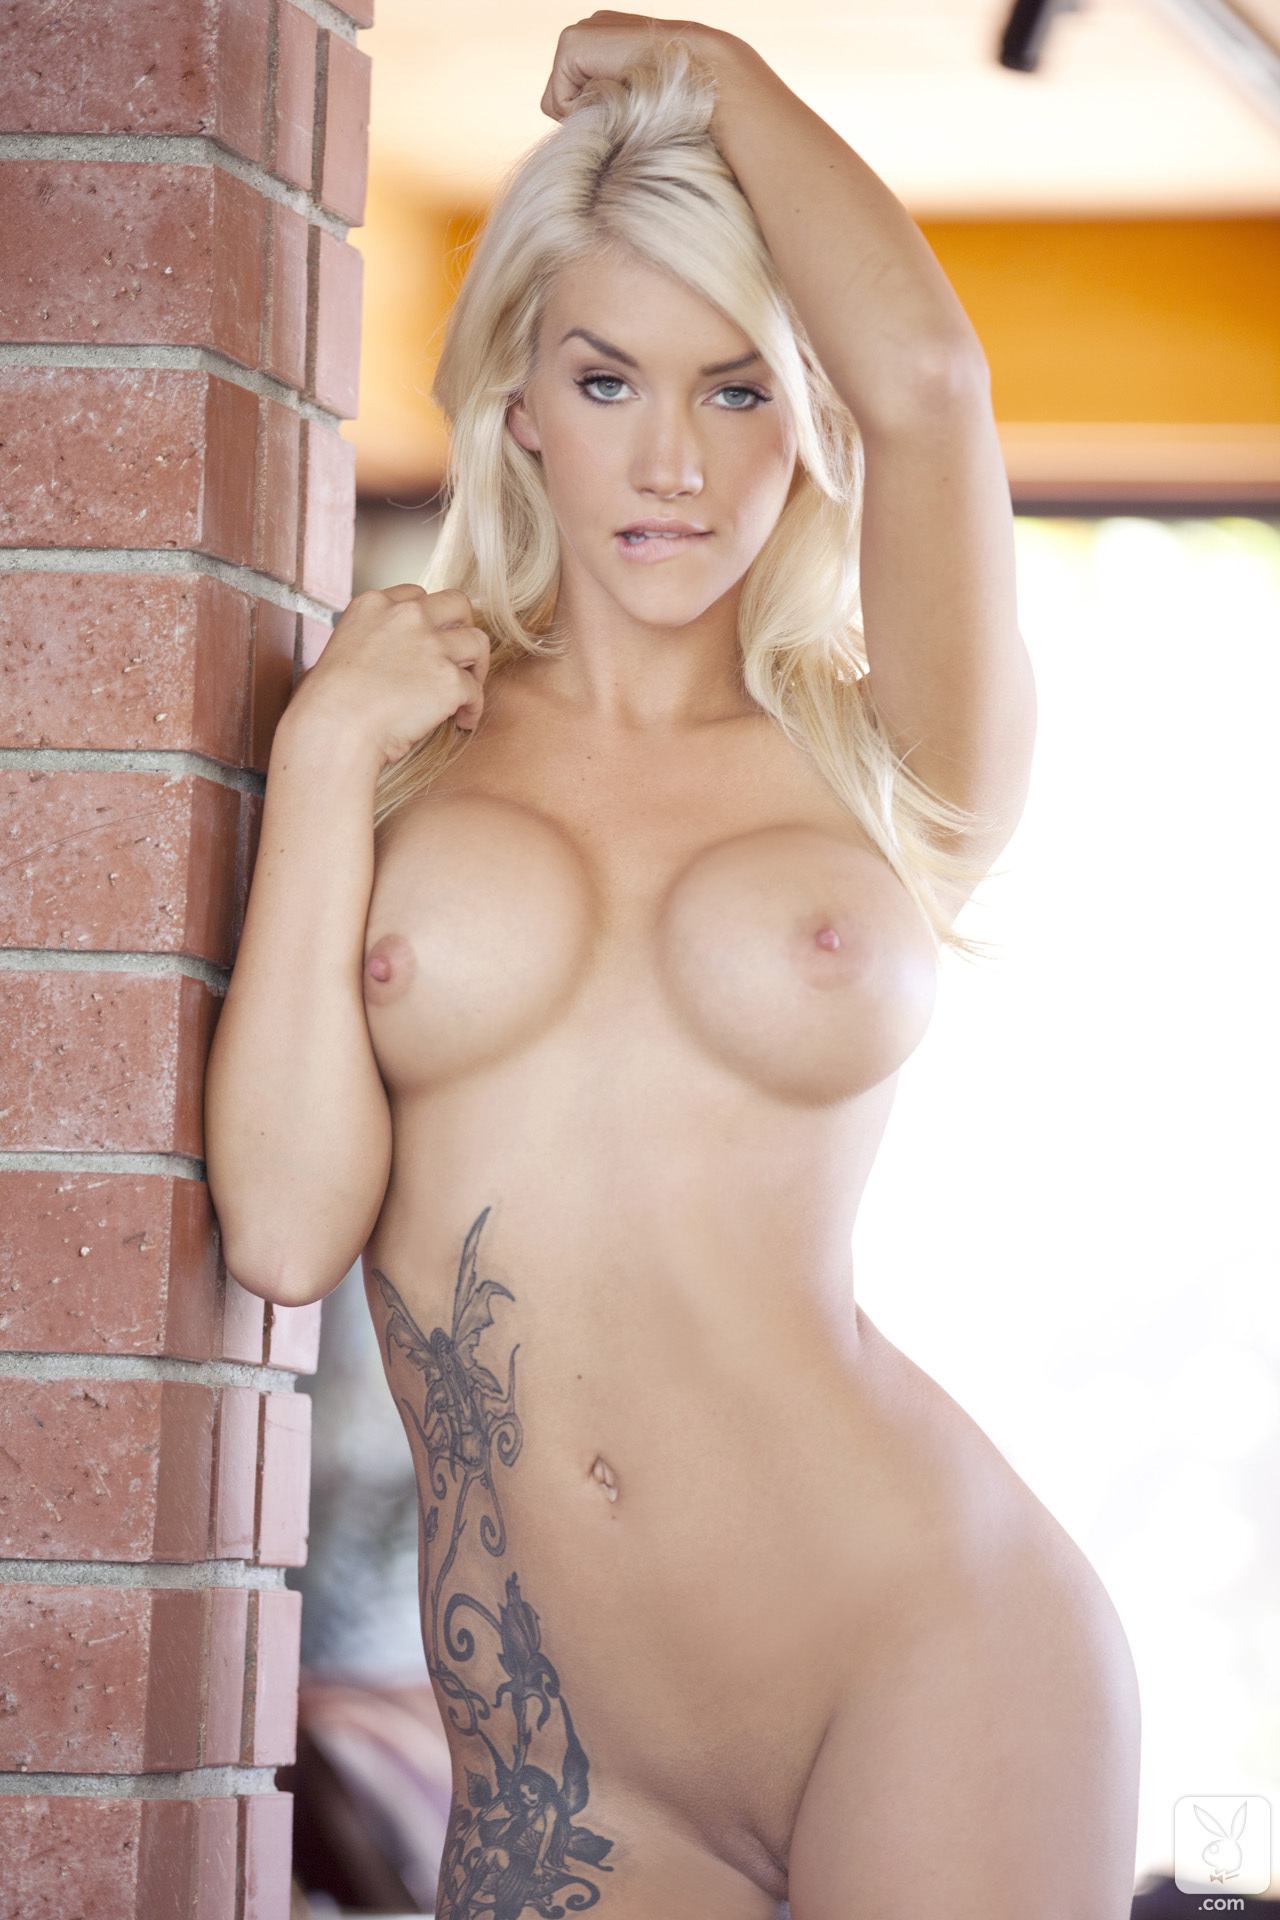 Taylor Seinturier Cybergirl Of The Month July 2012 Blonde Lust (22)